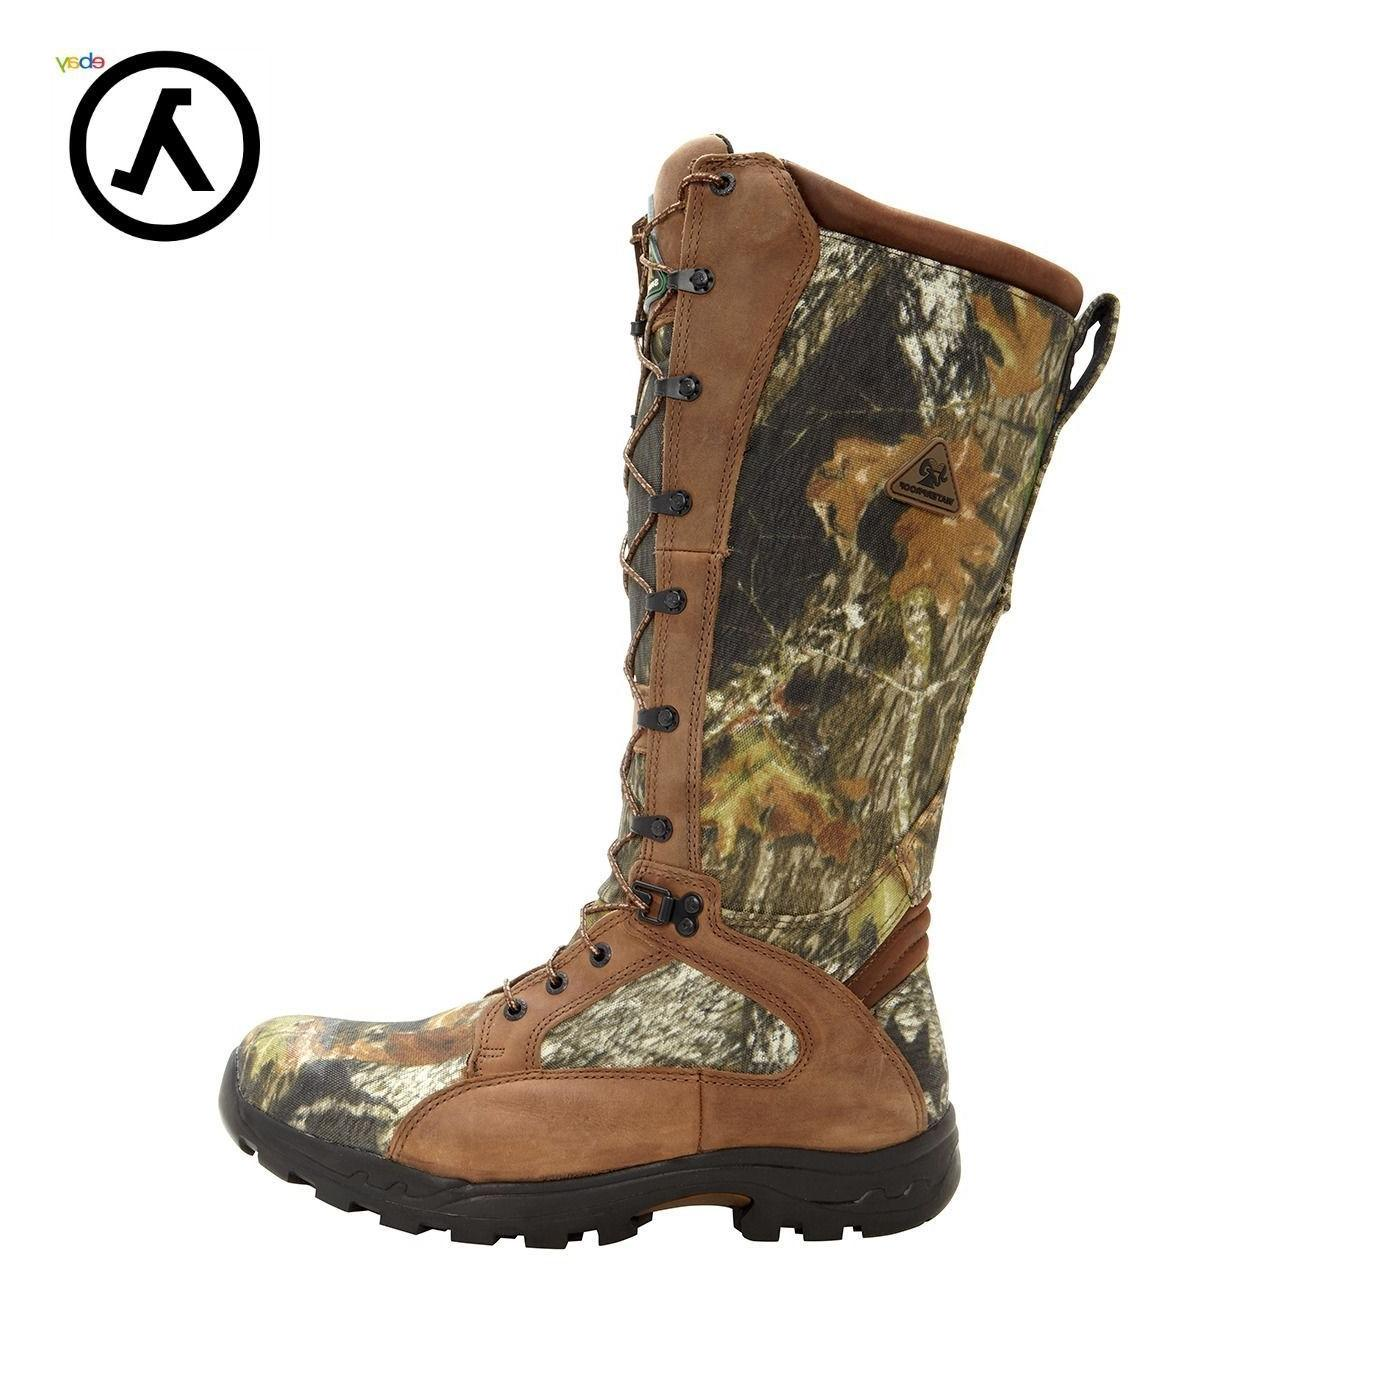 ROCKY PROLIGHT WATERPROOF SNAKE PROOF HUNTING BOOTS FQ000157